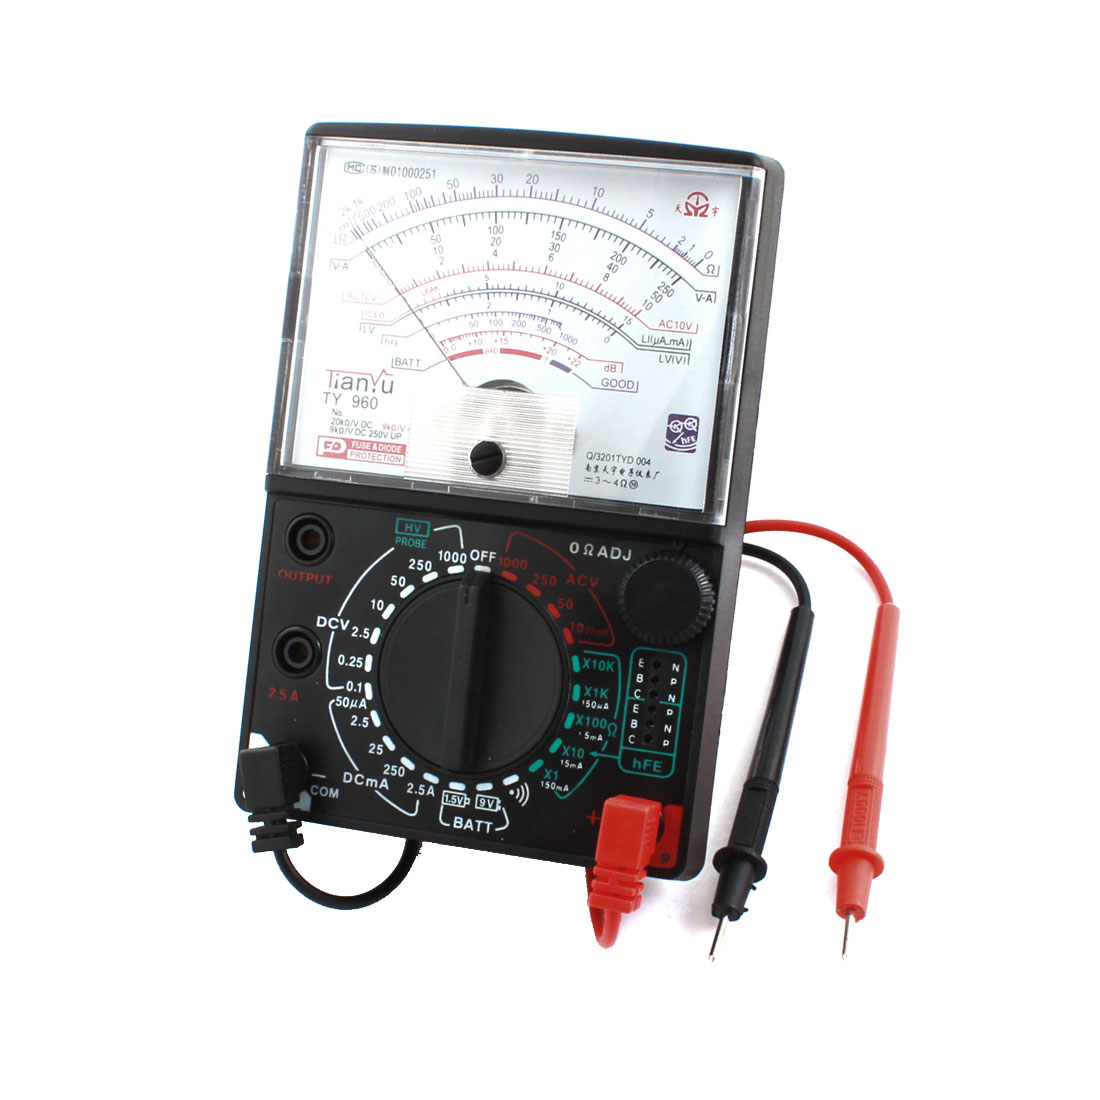 TY-960 Ohm Ampere Volt Diode Measuring Analog Multitester Multimeter w Leads